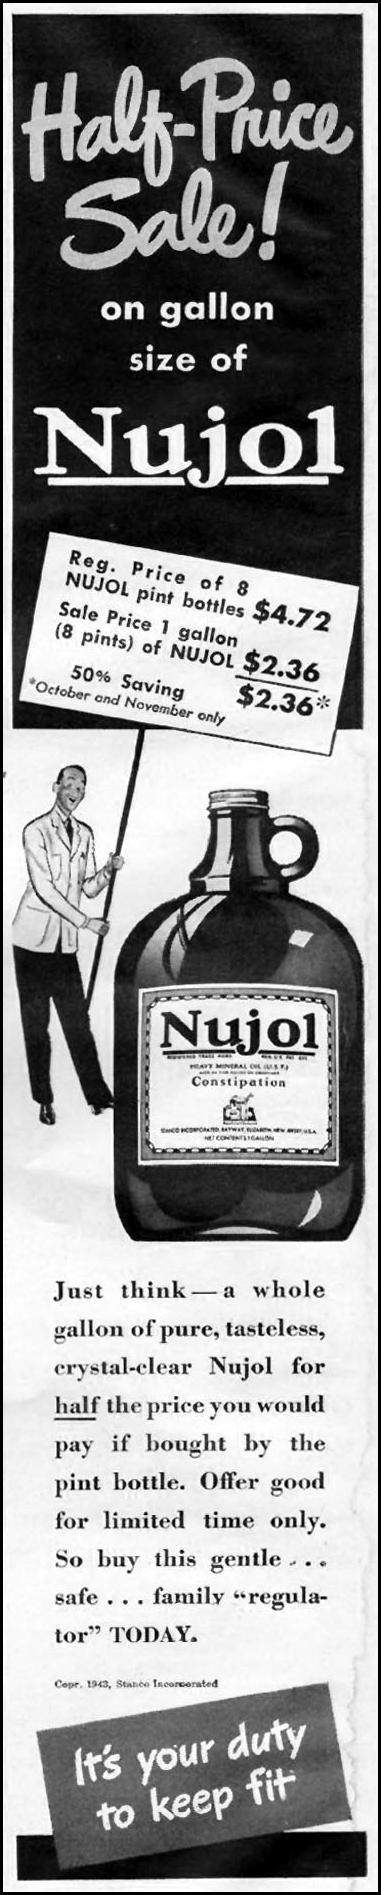 NUJOL LAXATIVE LIFE 10/23/1944 p. 4